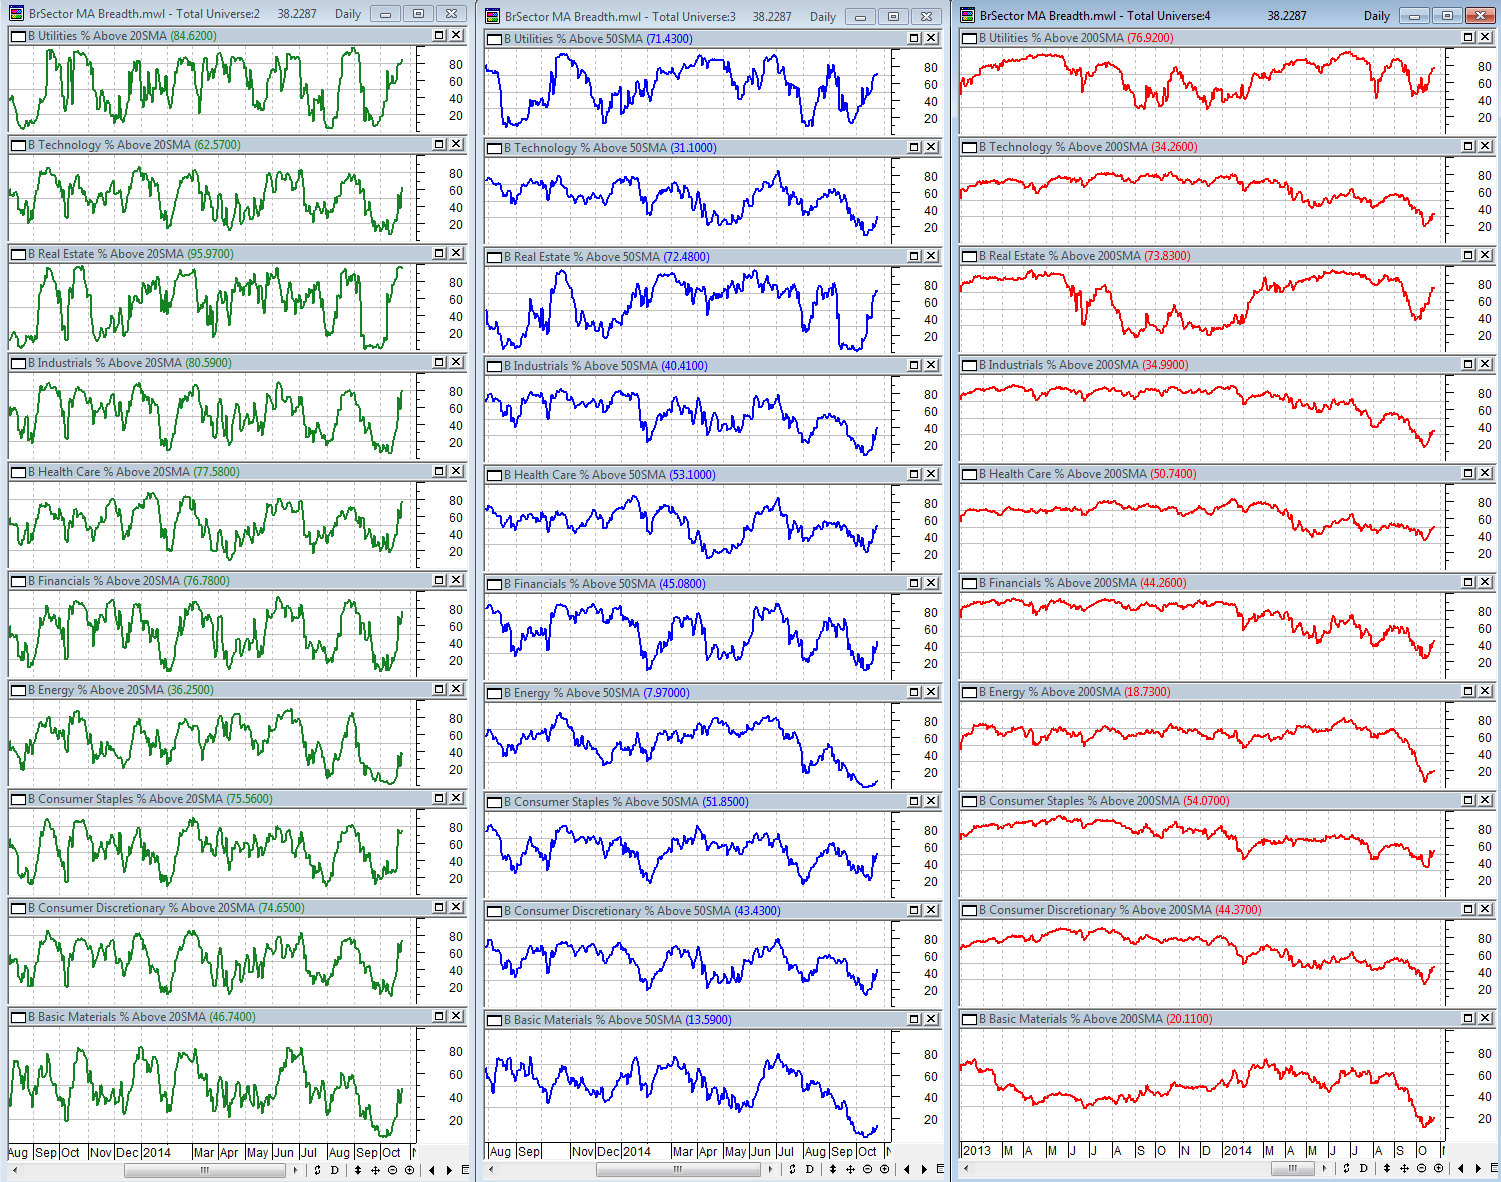 10-24-2014 BSec MA Breadth Dashboard